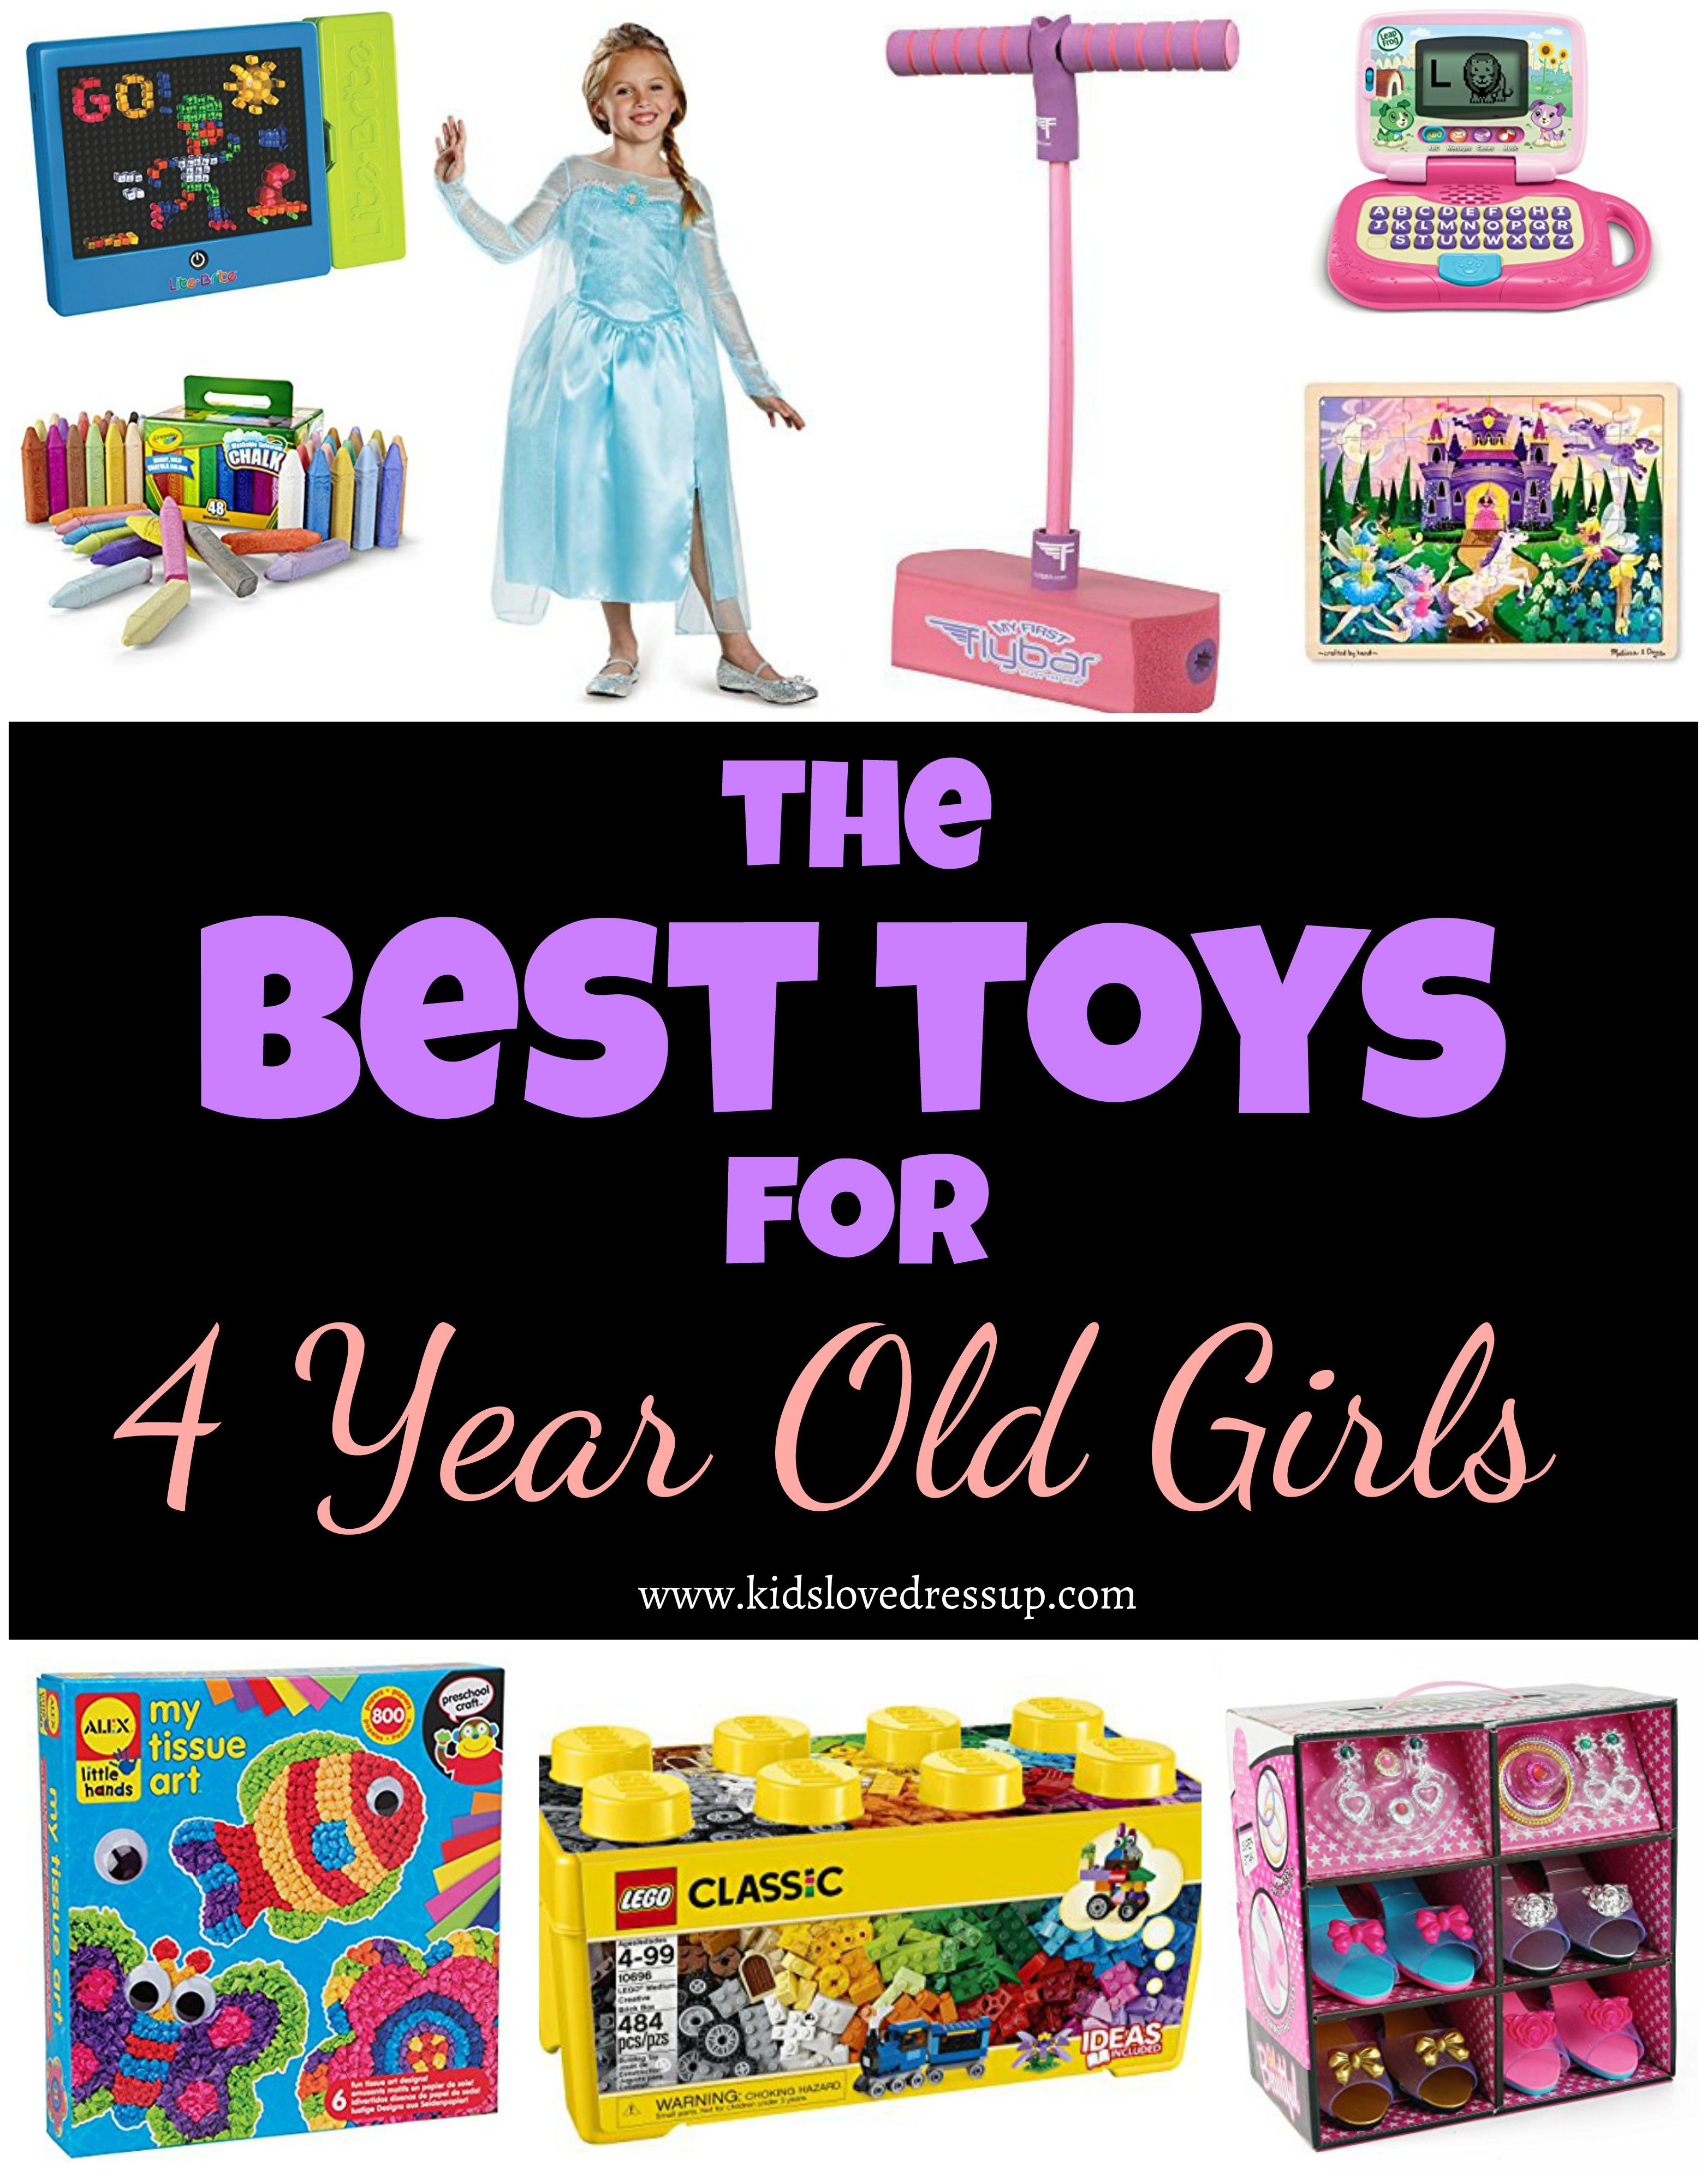 Best toys for 4 year old girls want her to be busy and